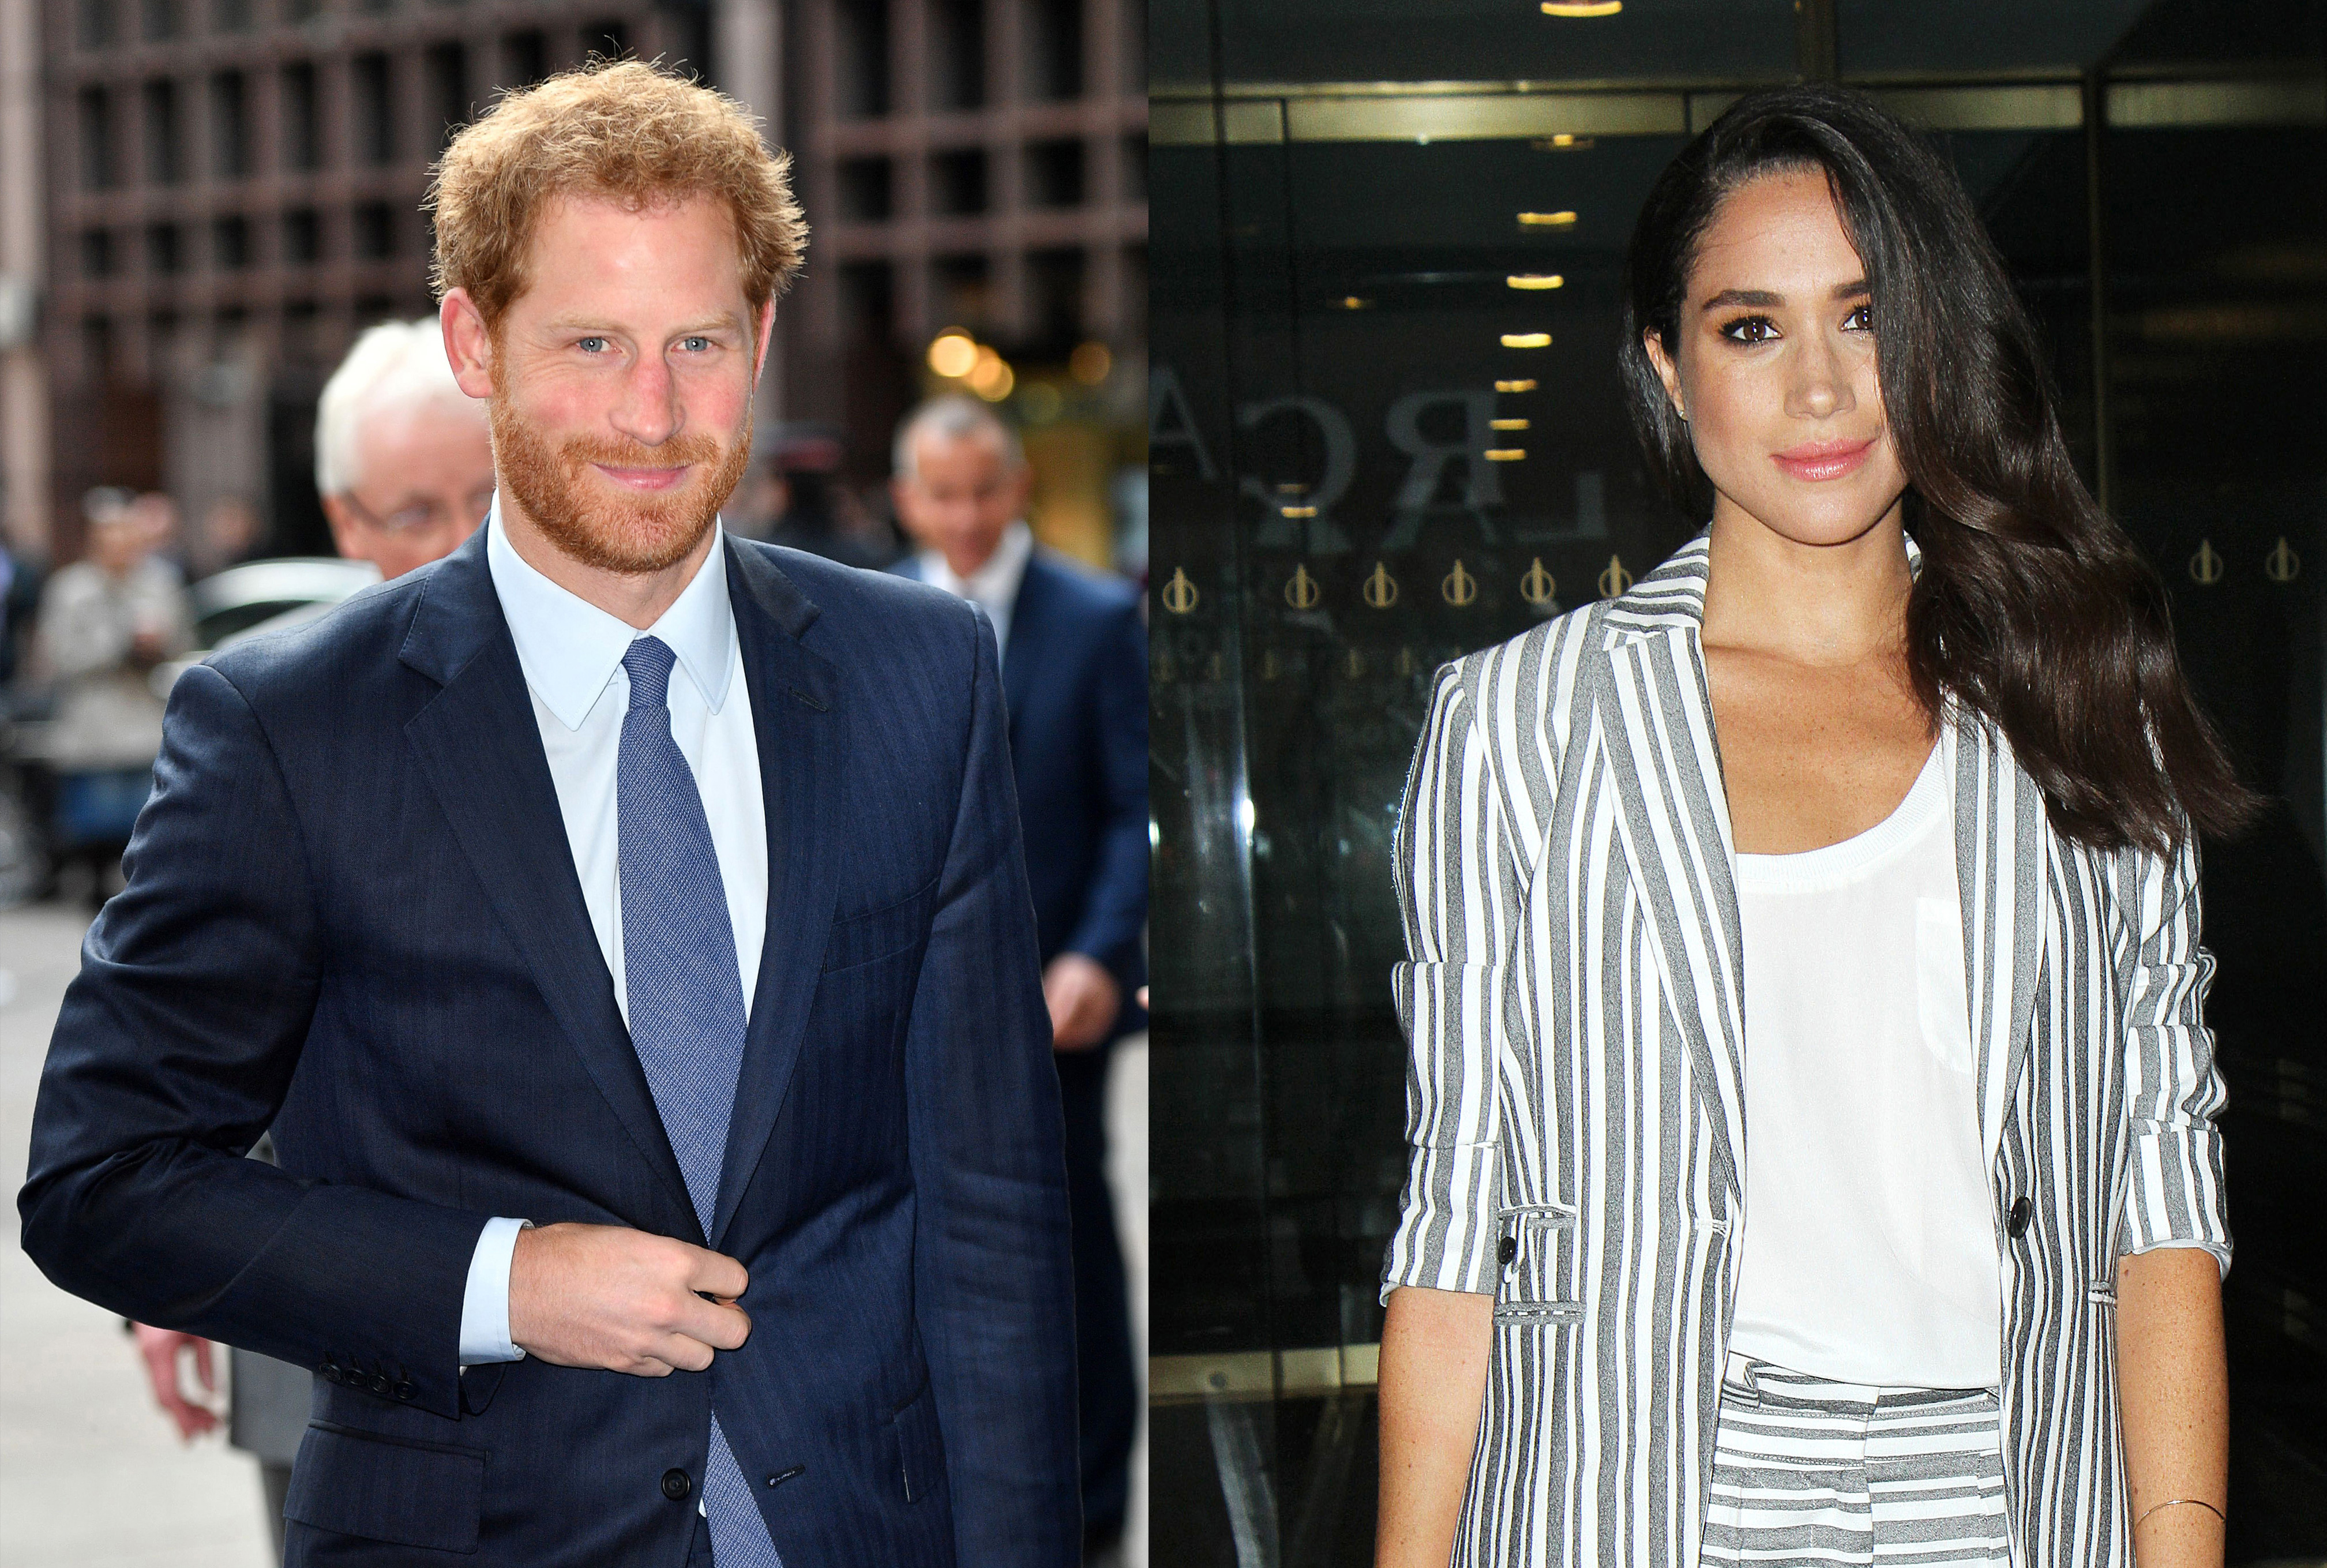 Meghan Markle Partying >> Prince Harry And Meghan Markle Wedding: What Can We Expect?